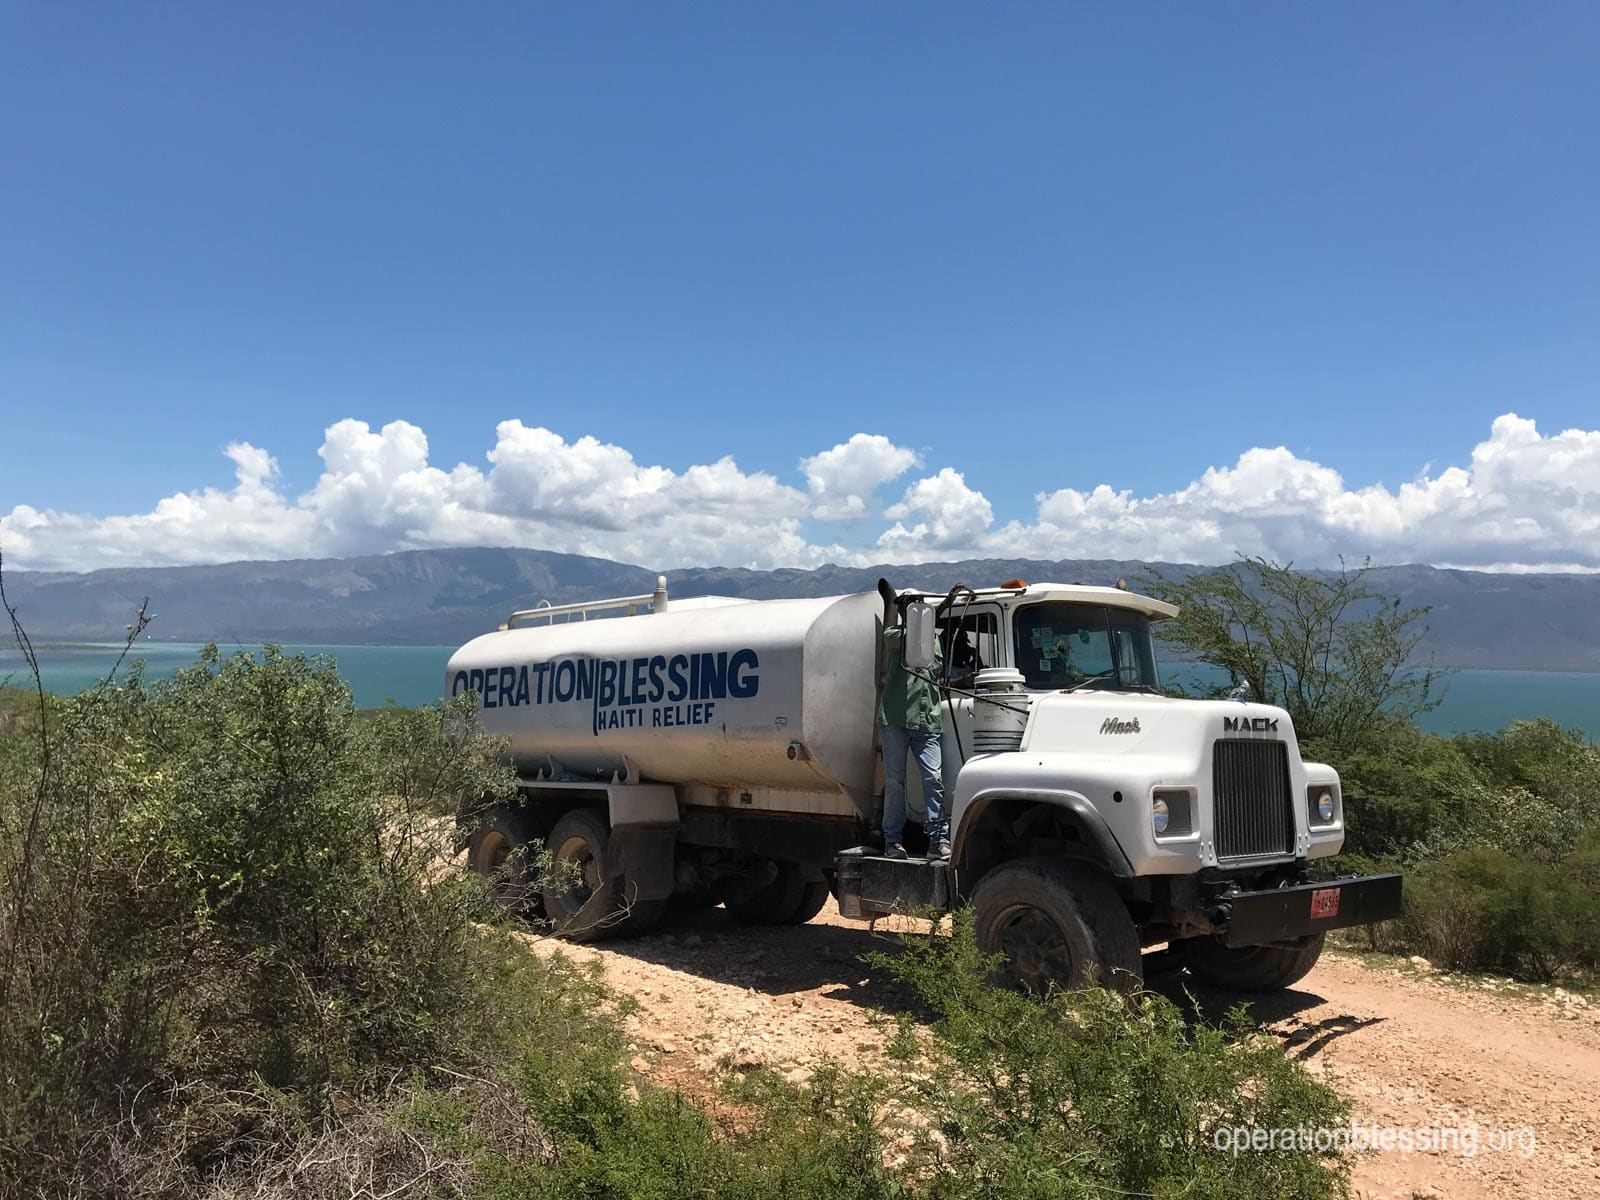 A truck making a delivery of safe water supplies.